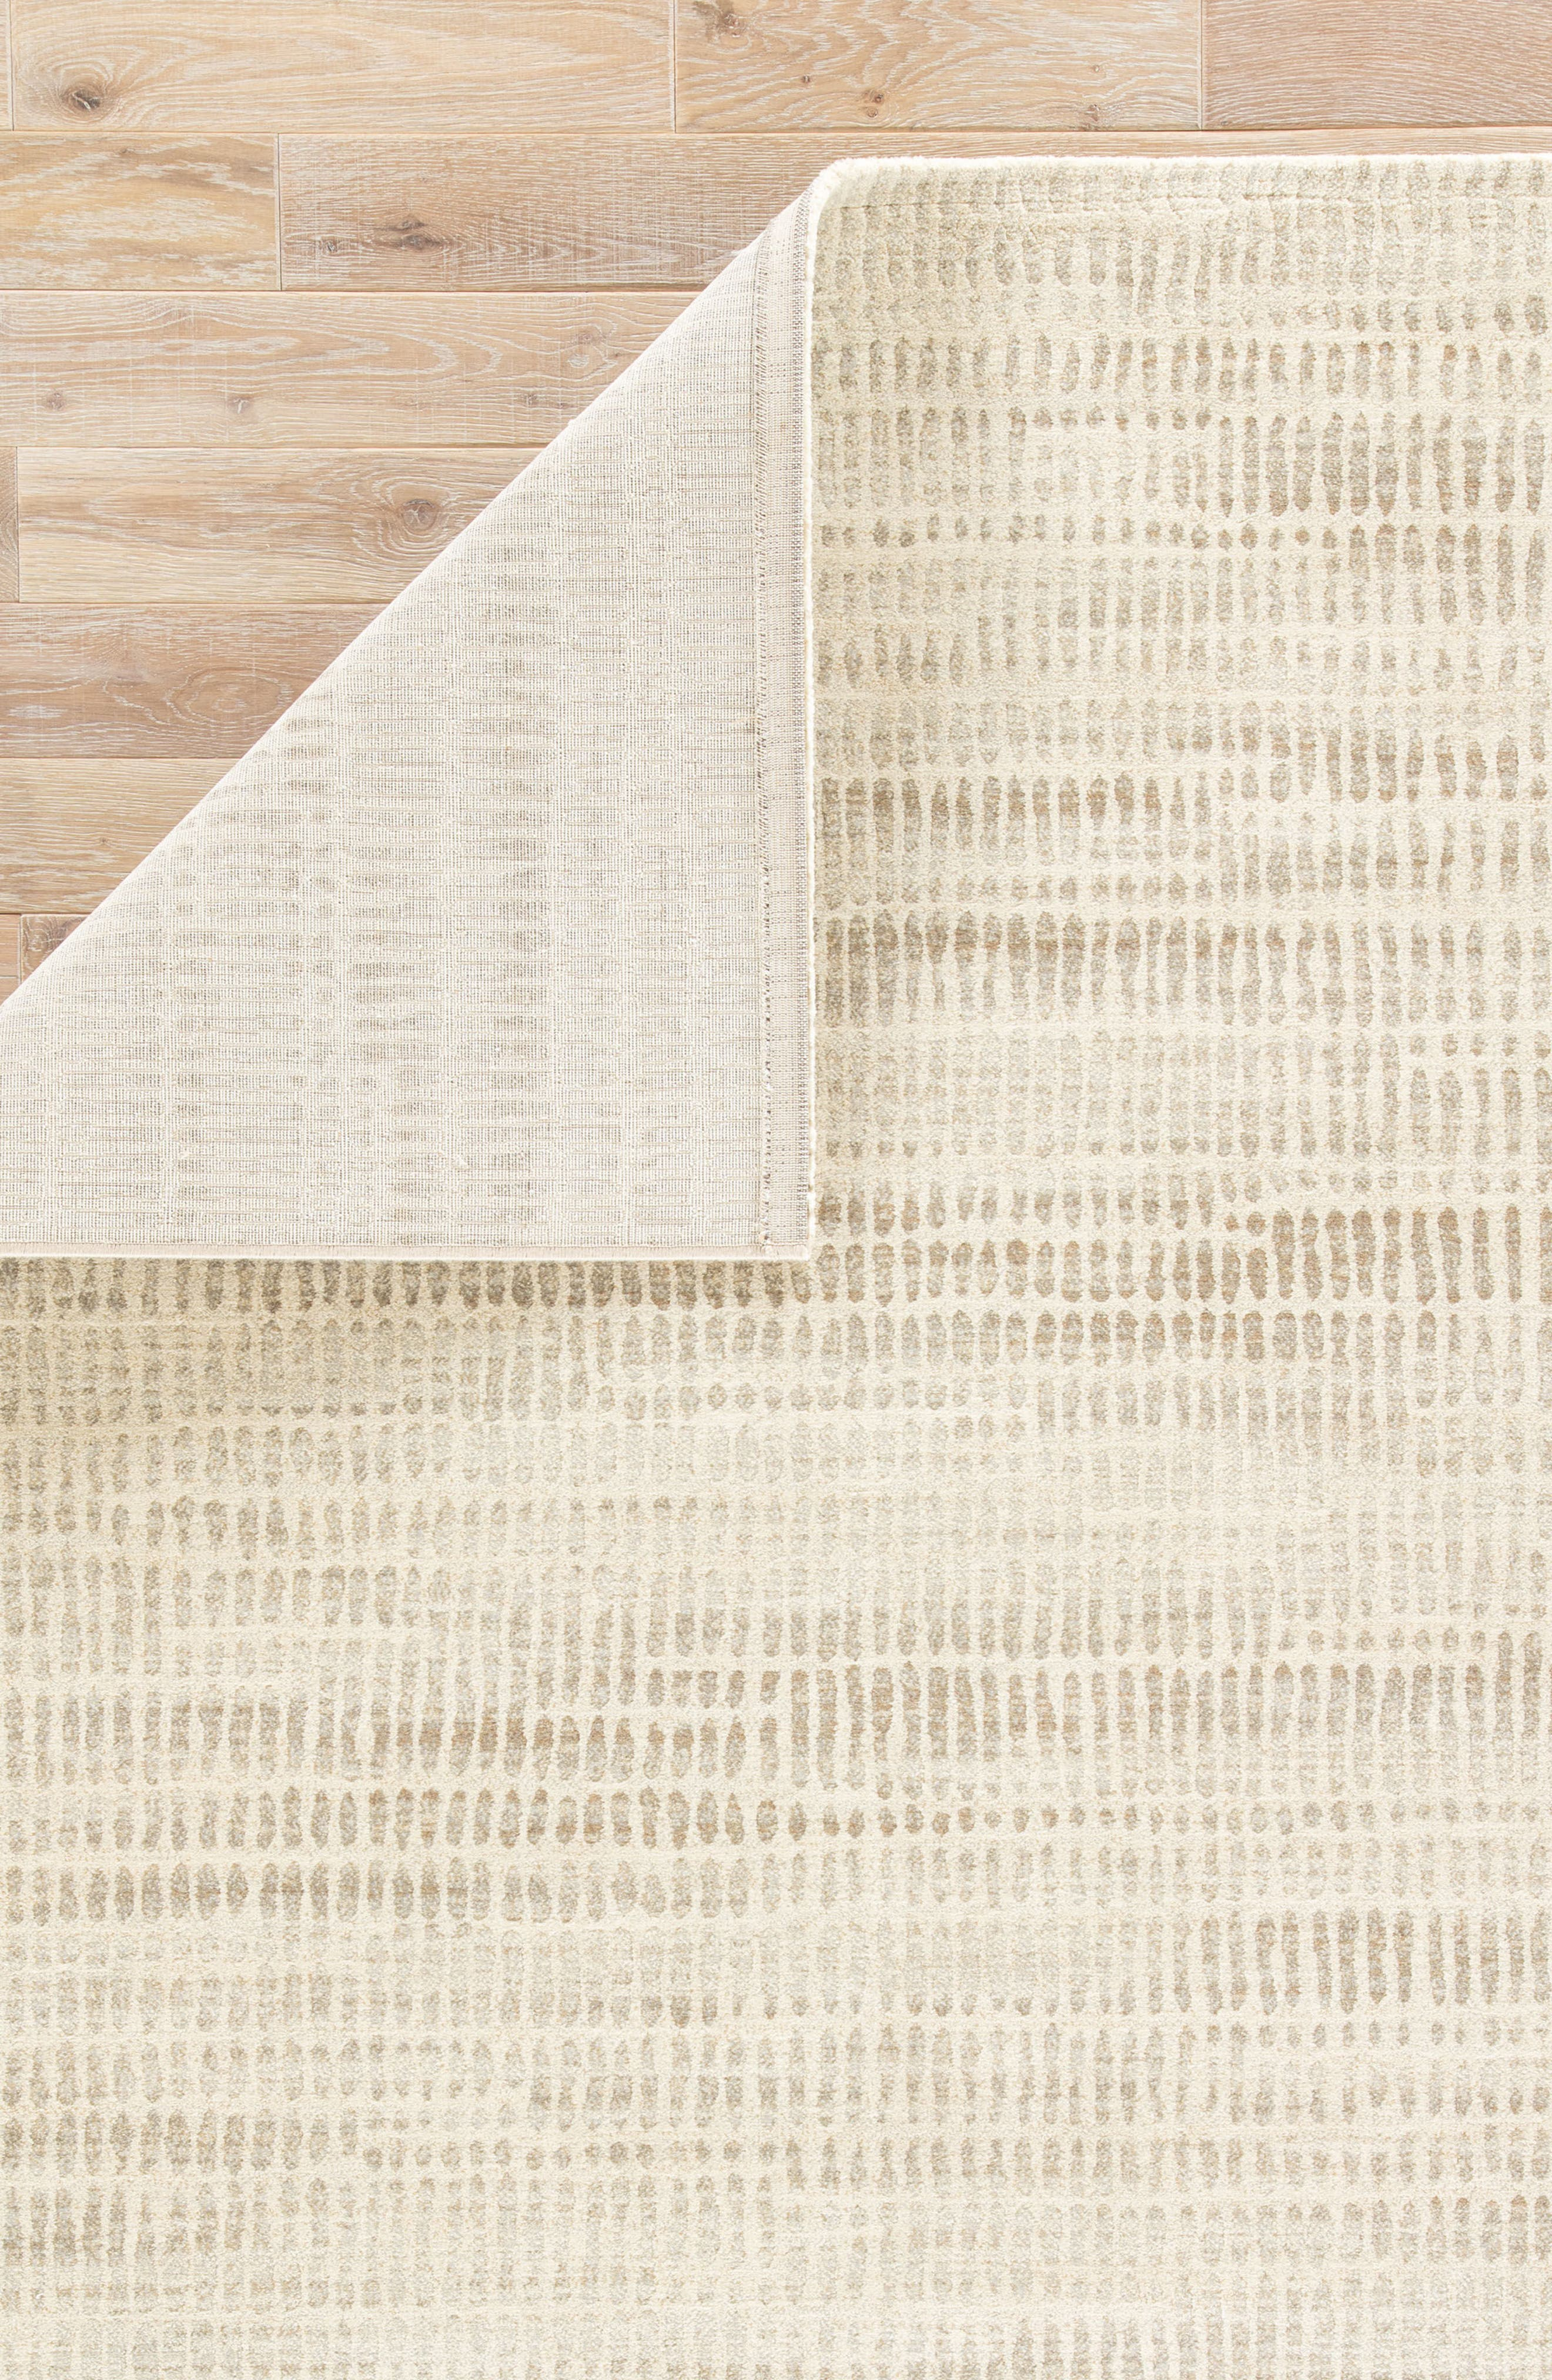 Blurred Water Rug,                             Alternate thumbnail 4, color,                             Beige Taupe